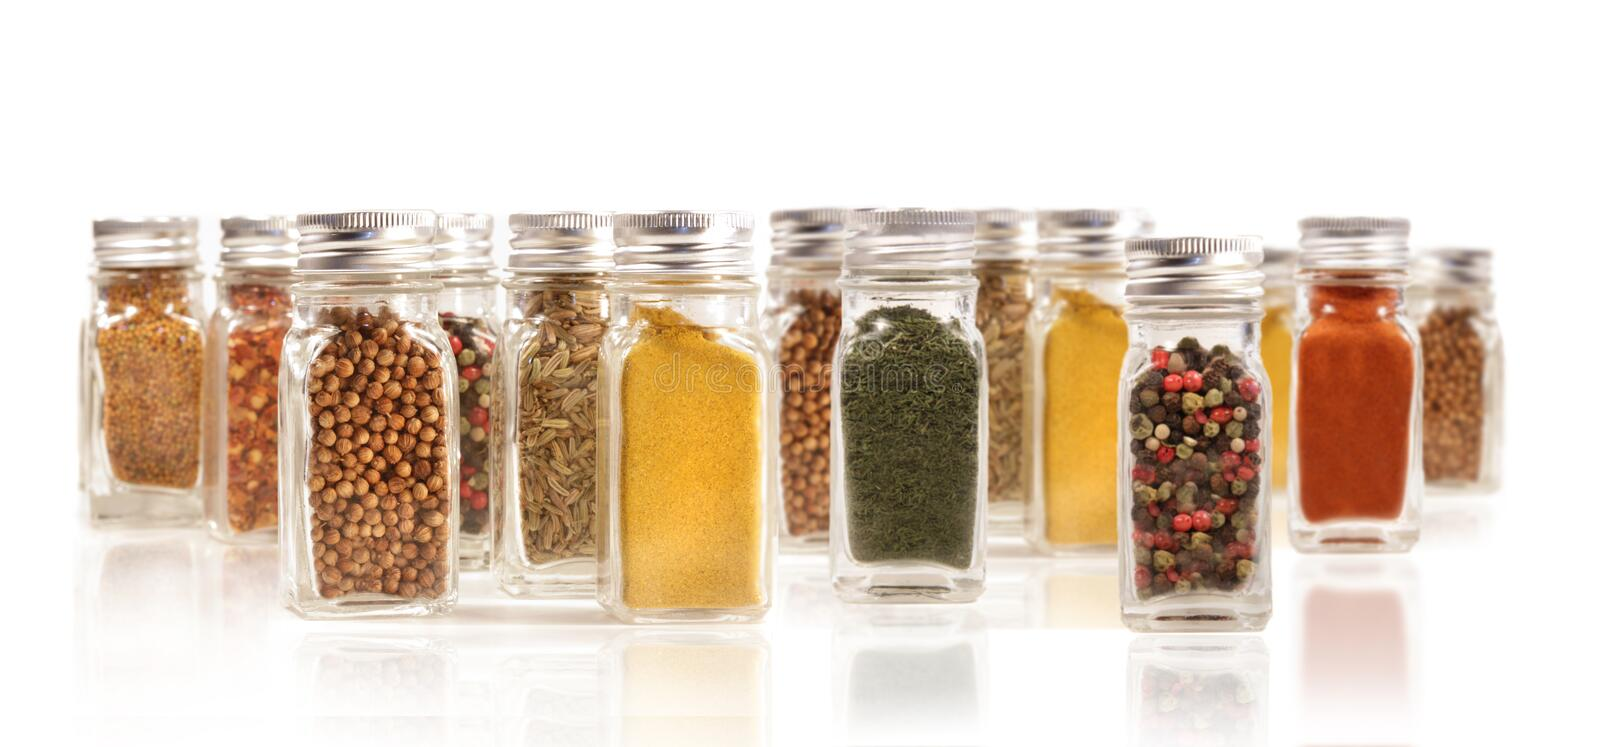 Assorted spice bottles isolated on white royalty free stock photo